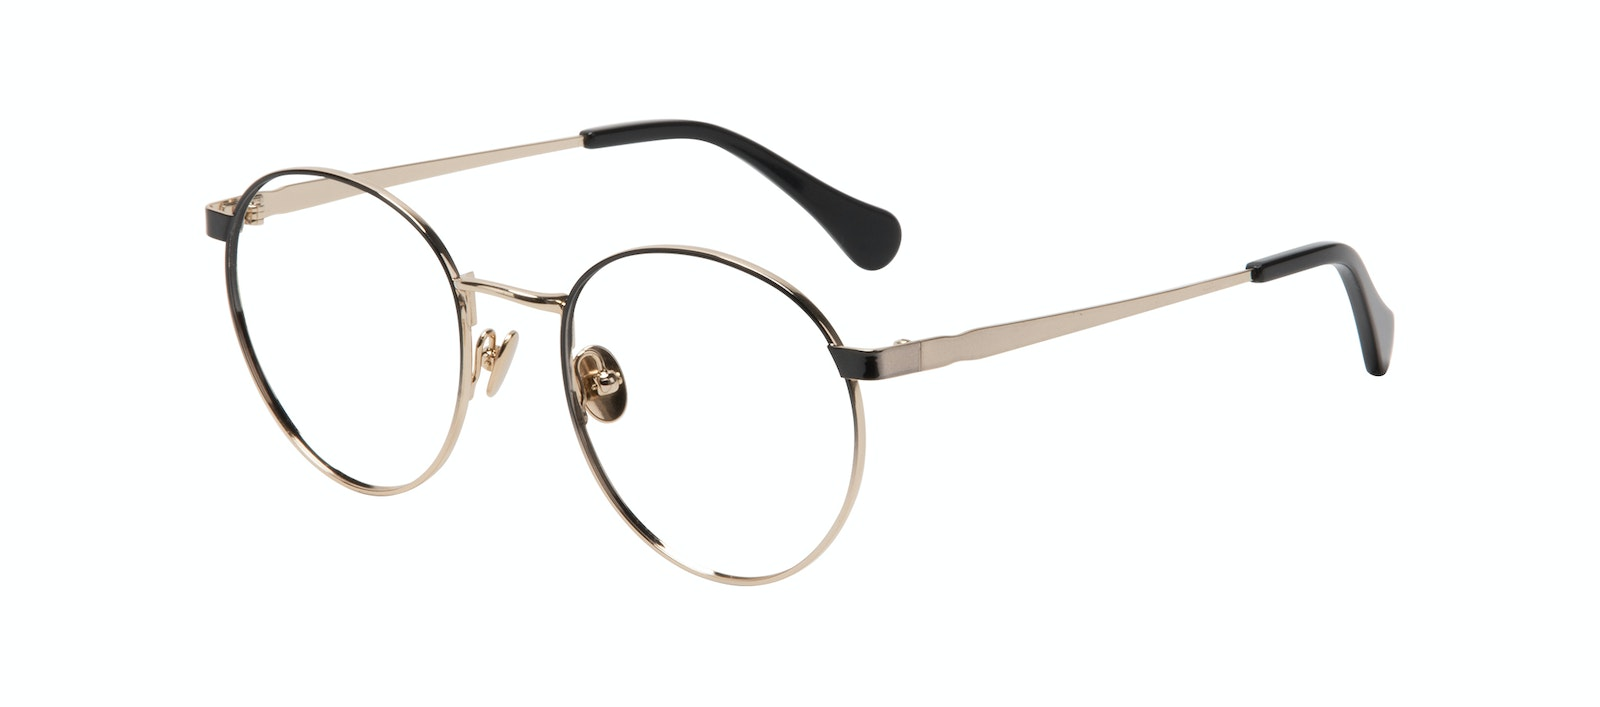 Affordable Fashion Glasses Round Eyeglasses Women Foundry Deep Gold Tilt